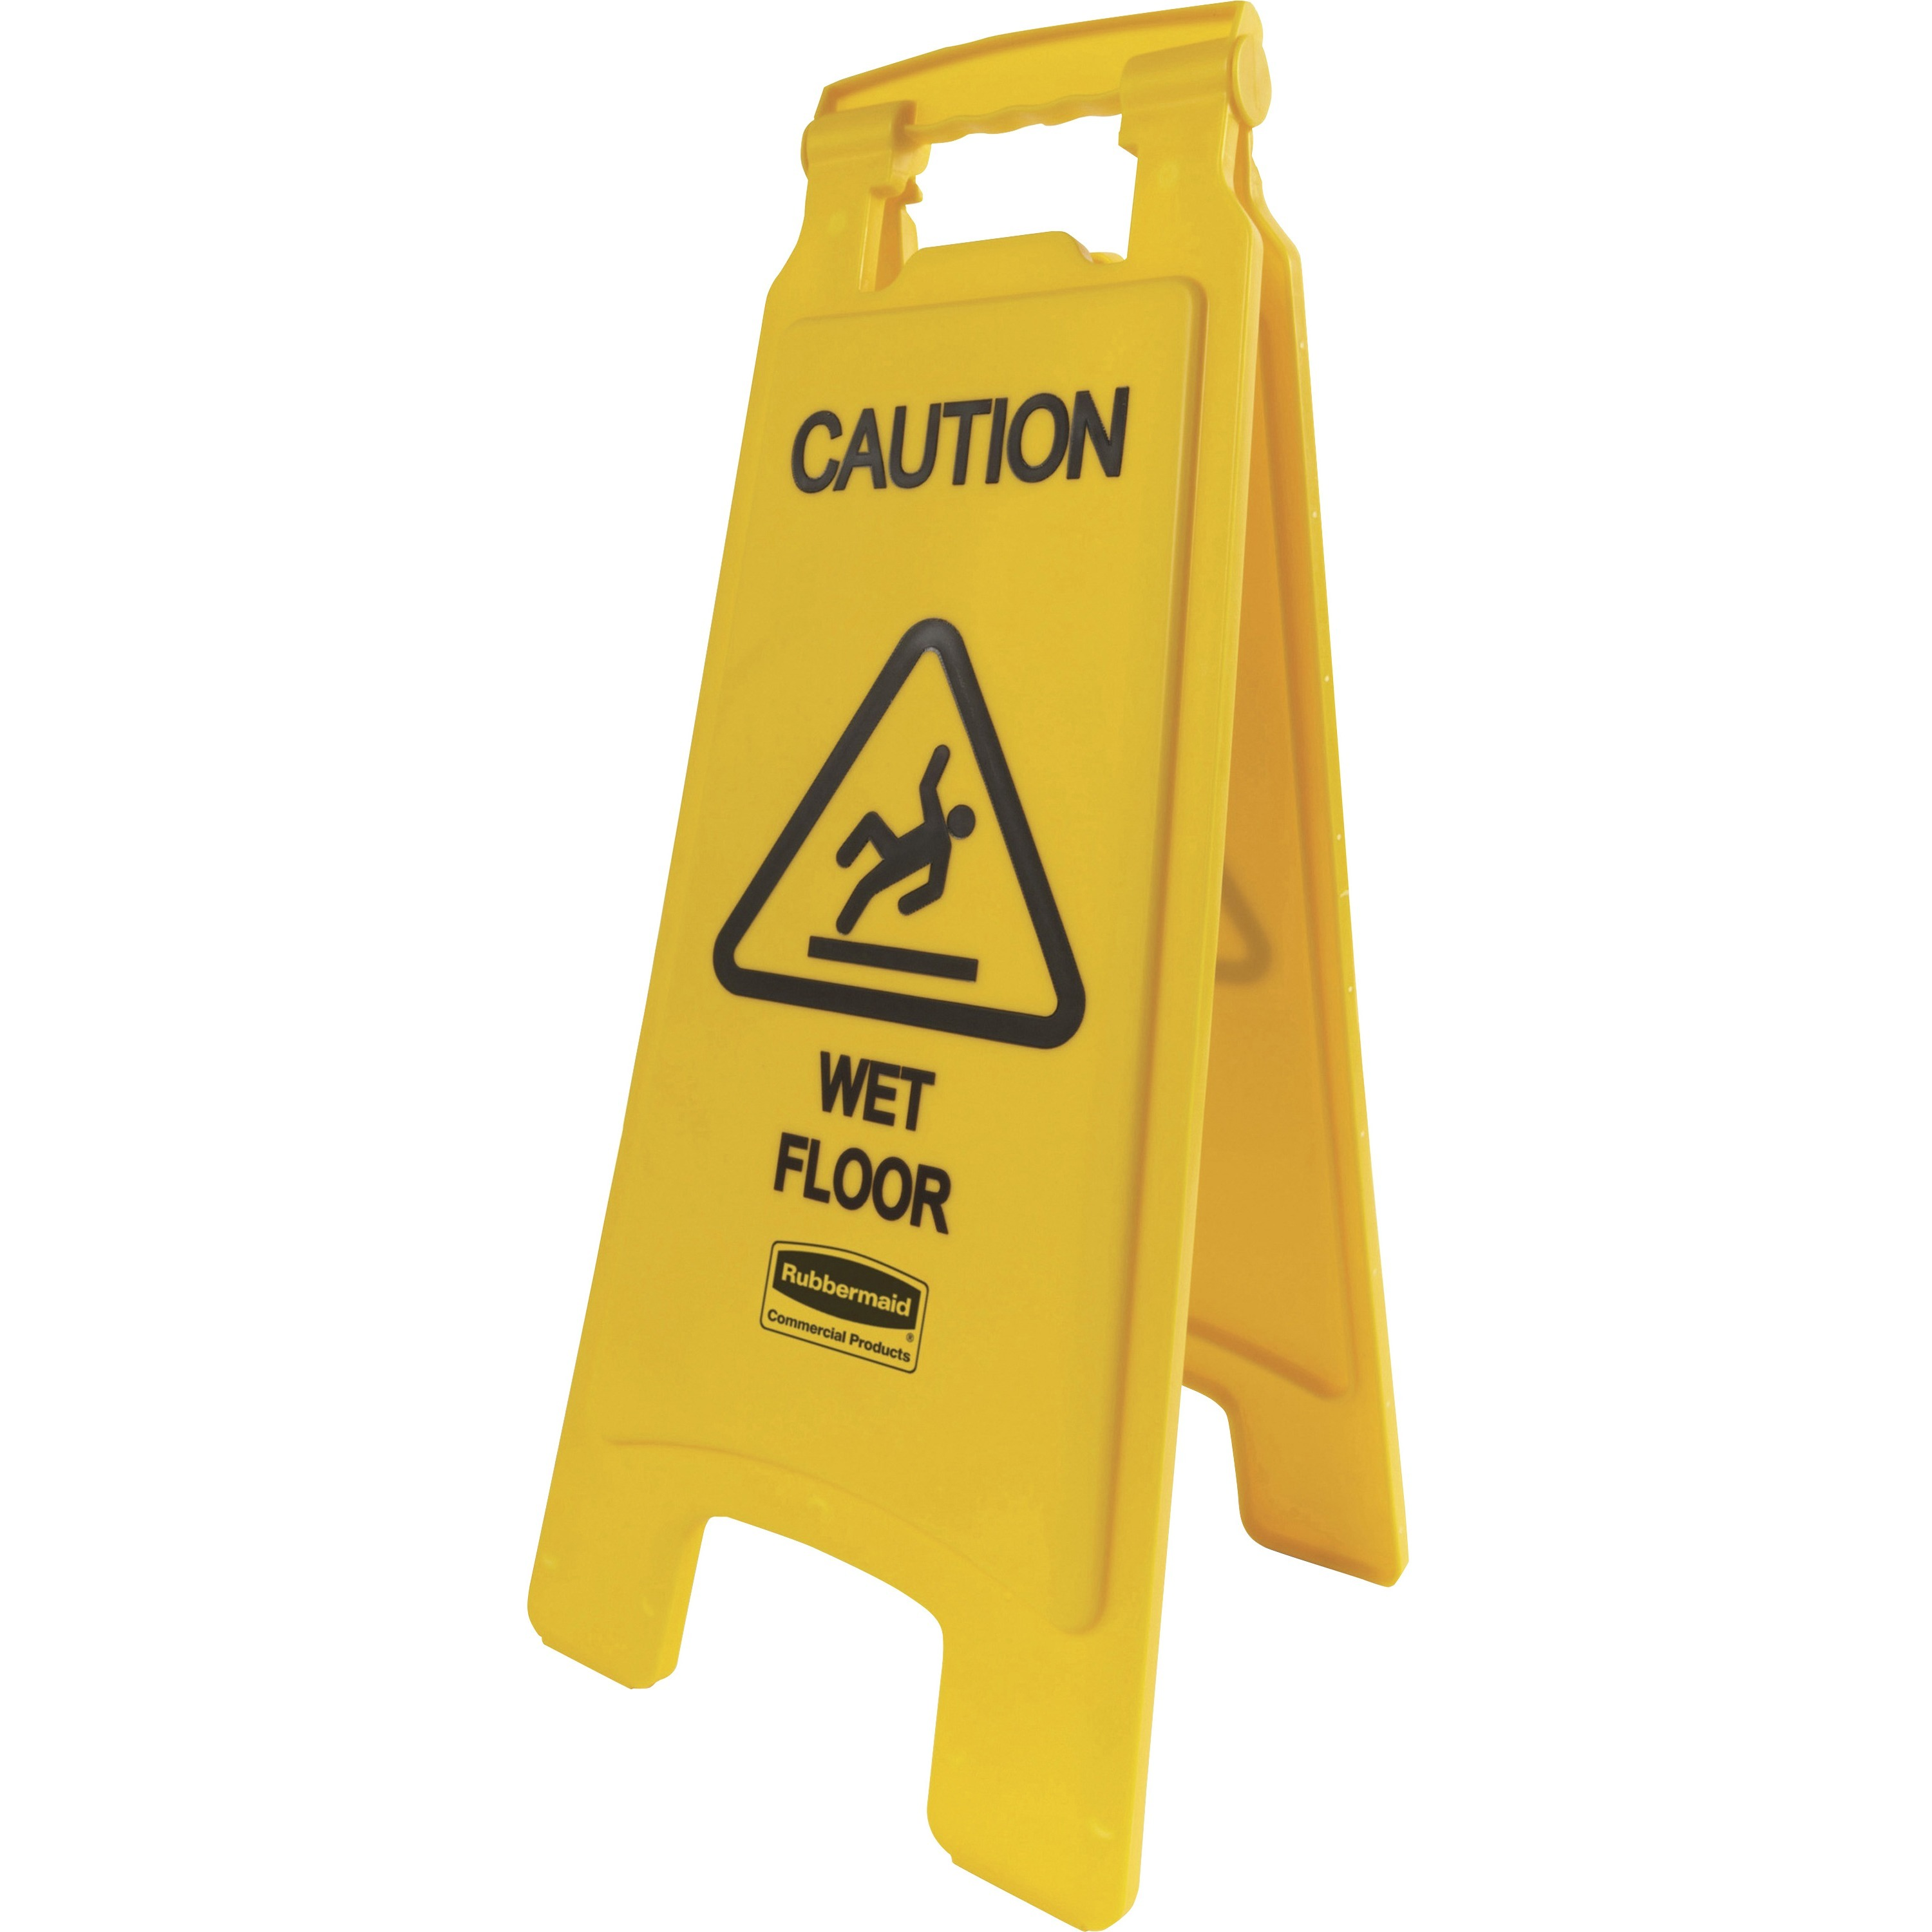 Rubbermaid Caution Wet Floor Safety Sign Madill The